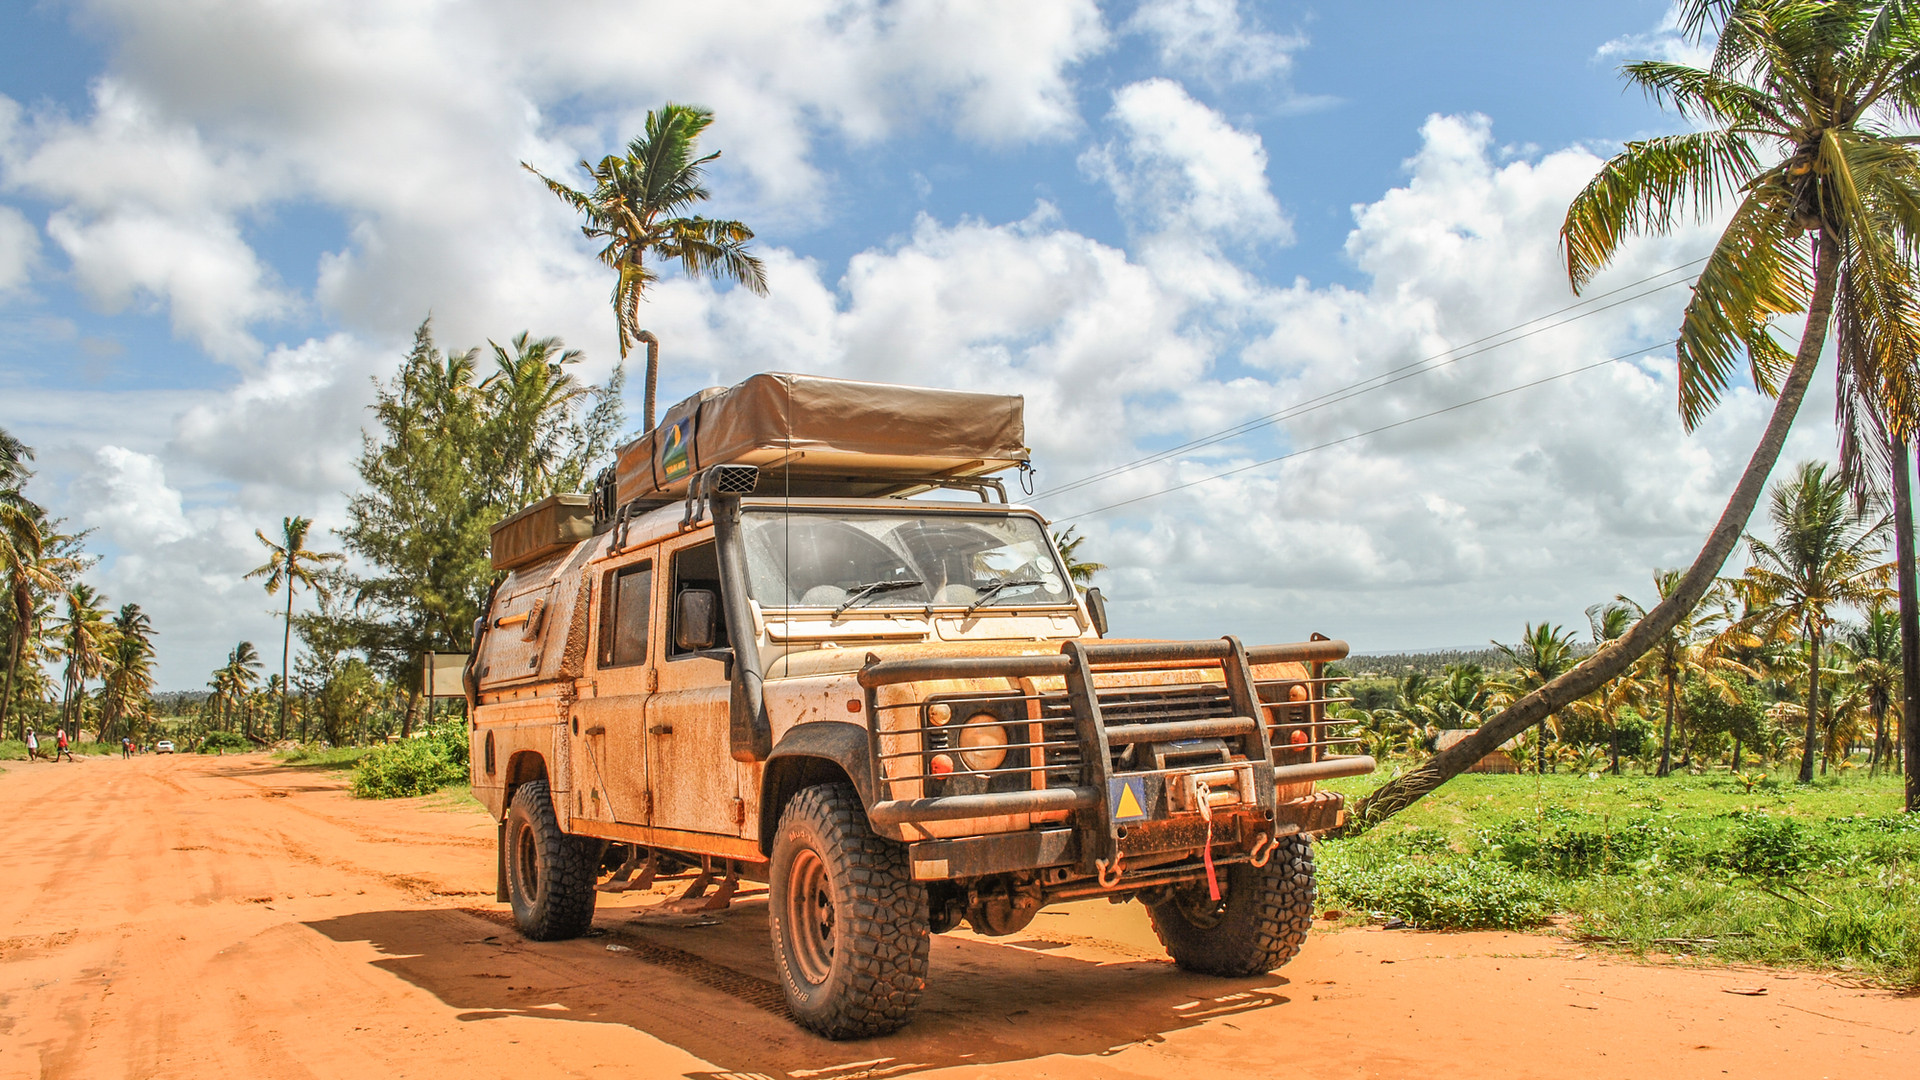 1. Mafuta the Landy in Mozambique, 2010.